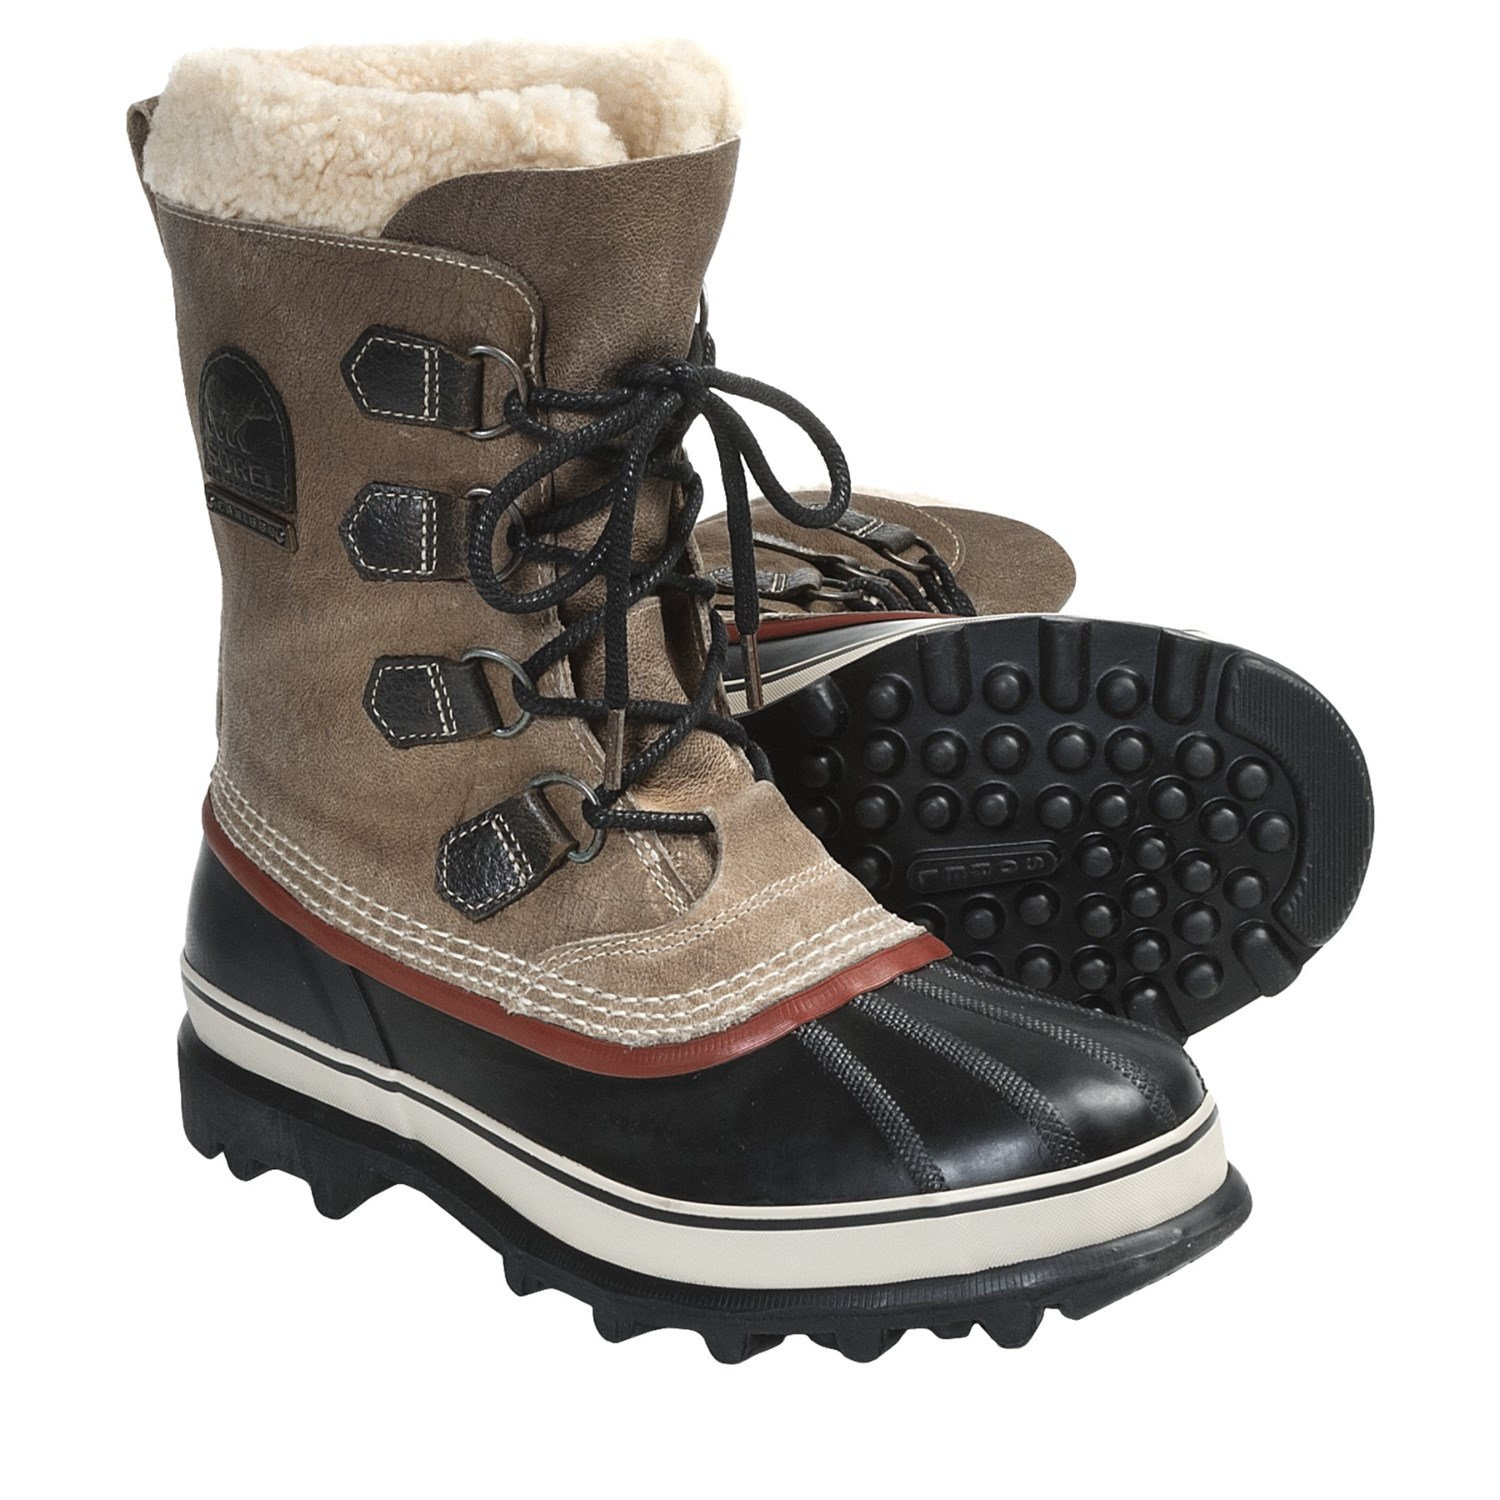 Mens Snow Boots Clearance - Cr Boot